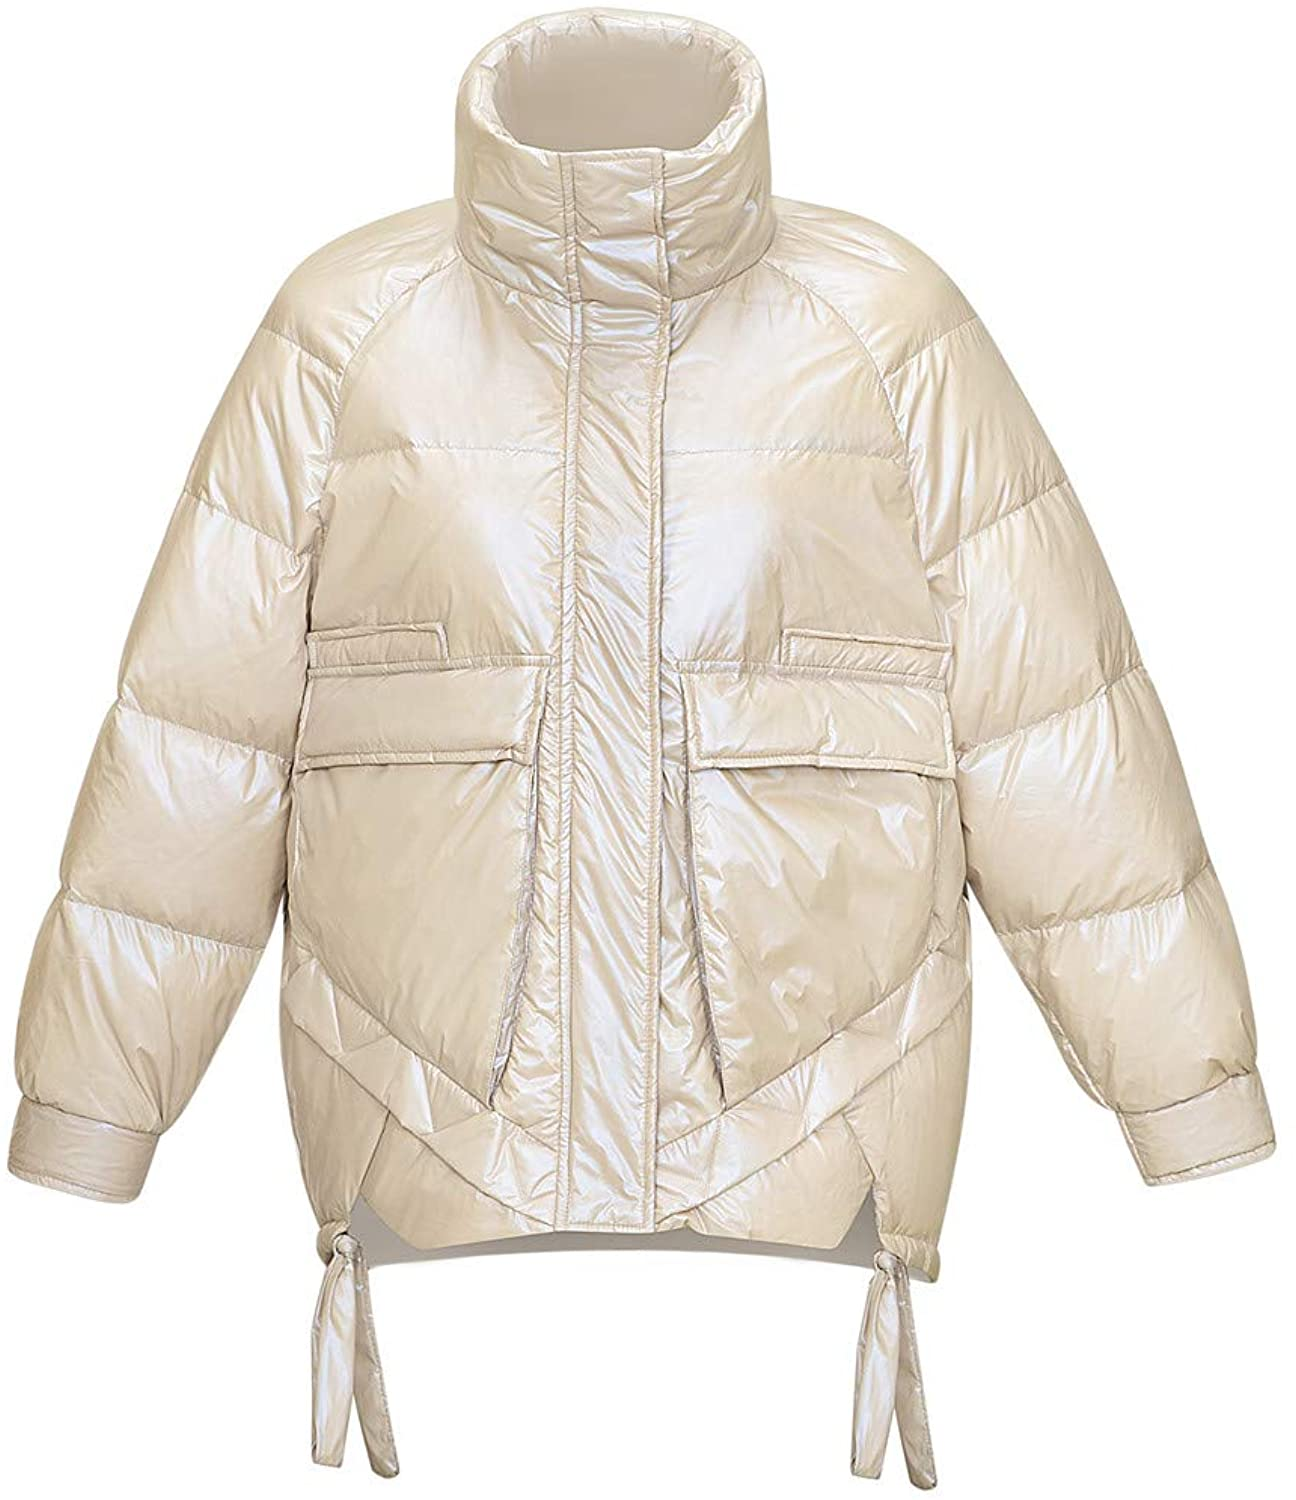 KISSQIQI Womens Thickened Duck Down Warm Parka Water-Resistant Jacket Coat Lightweight Outdoor Winter Outerwear